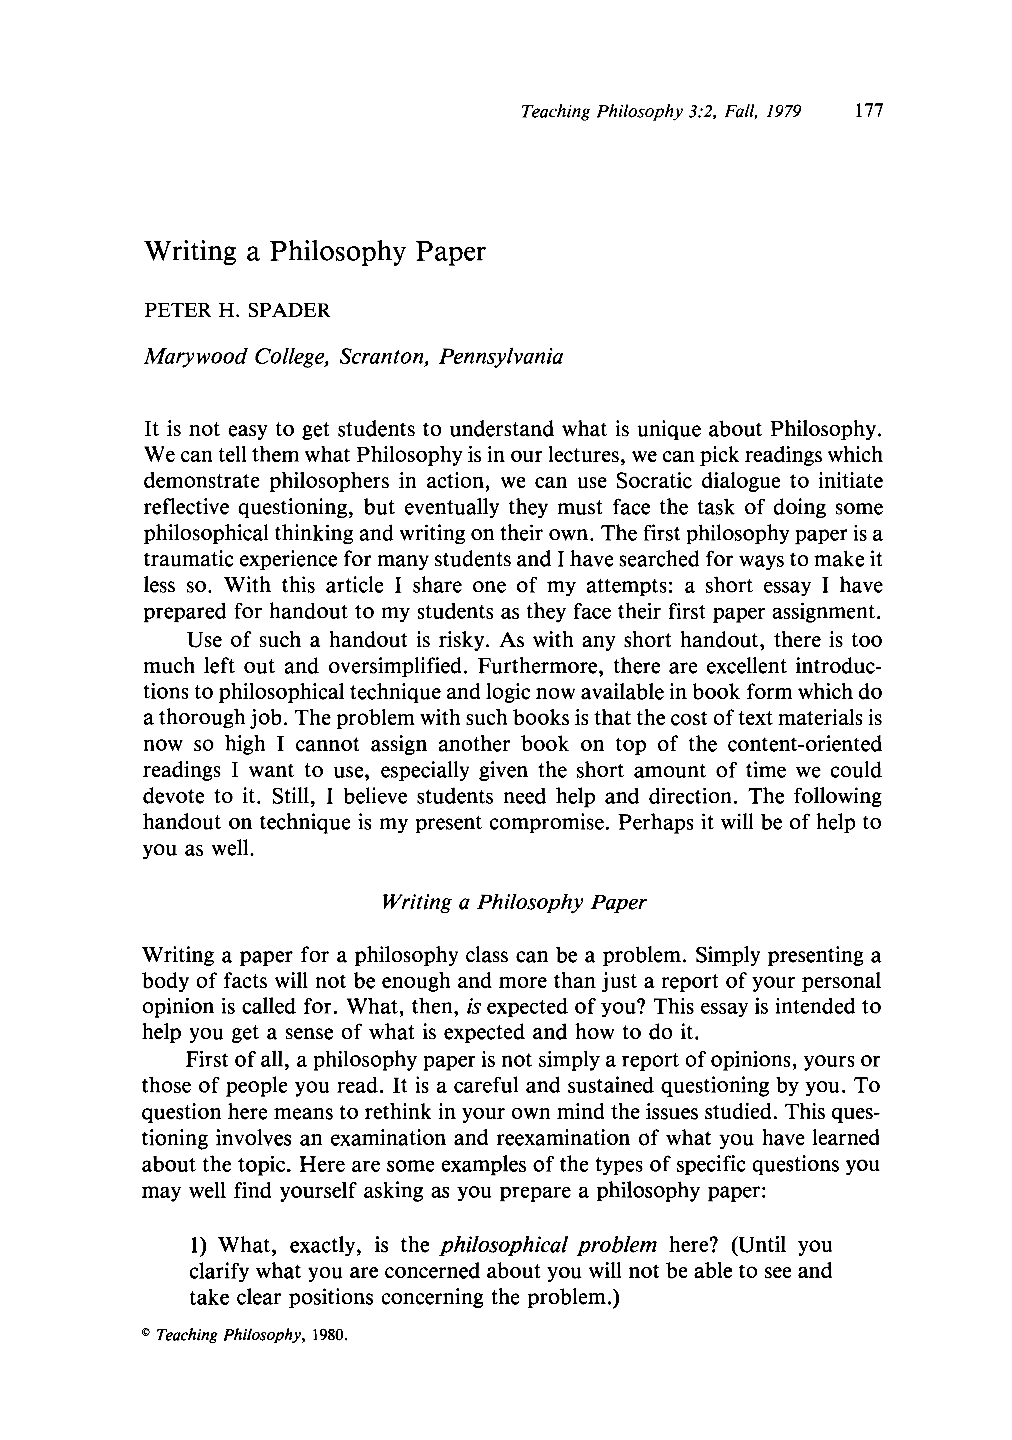 essay about philosophy essay education philosophy research paper a philosophical essay research paper academic servicea philosophical essay